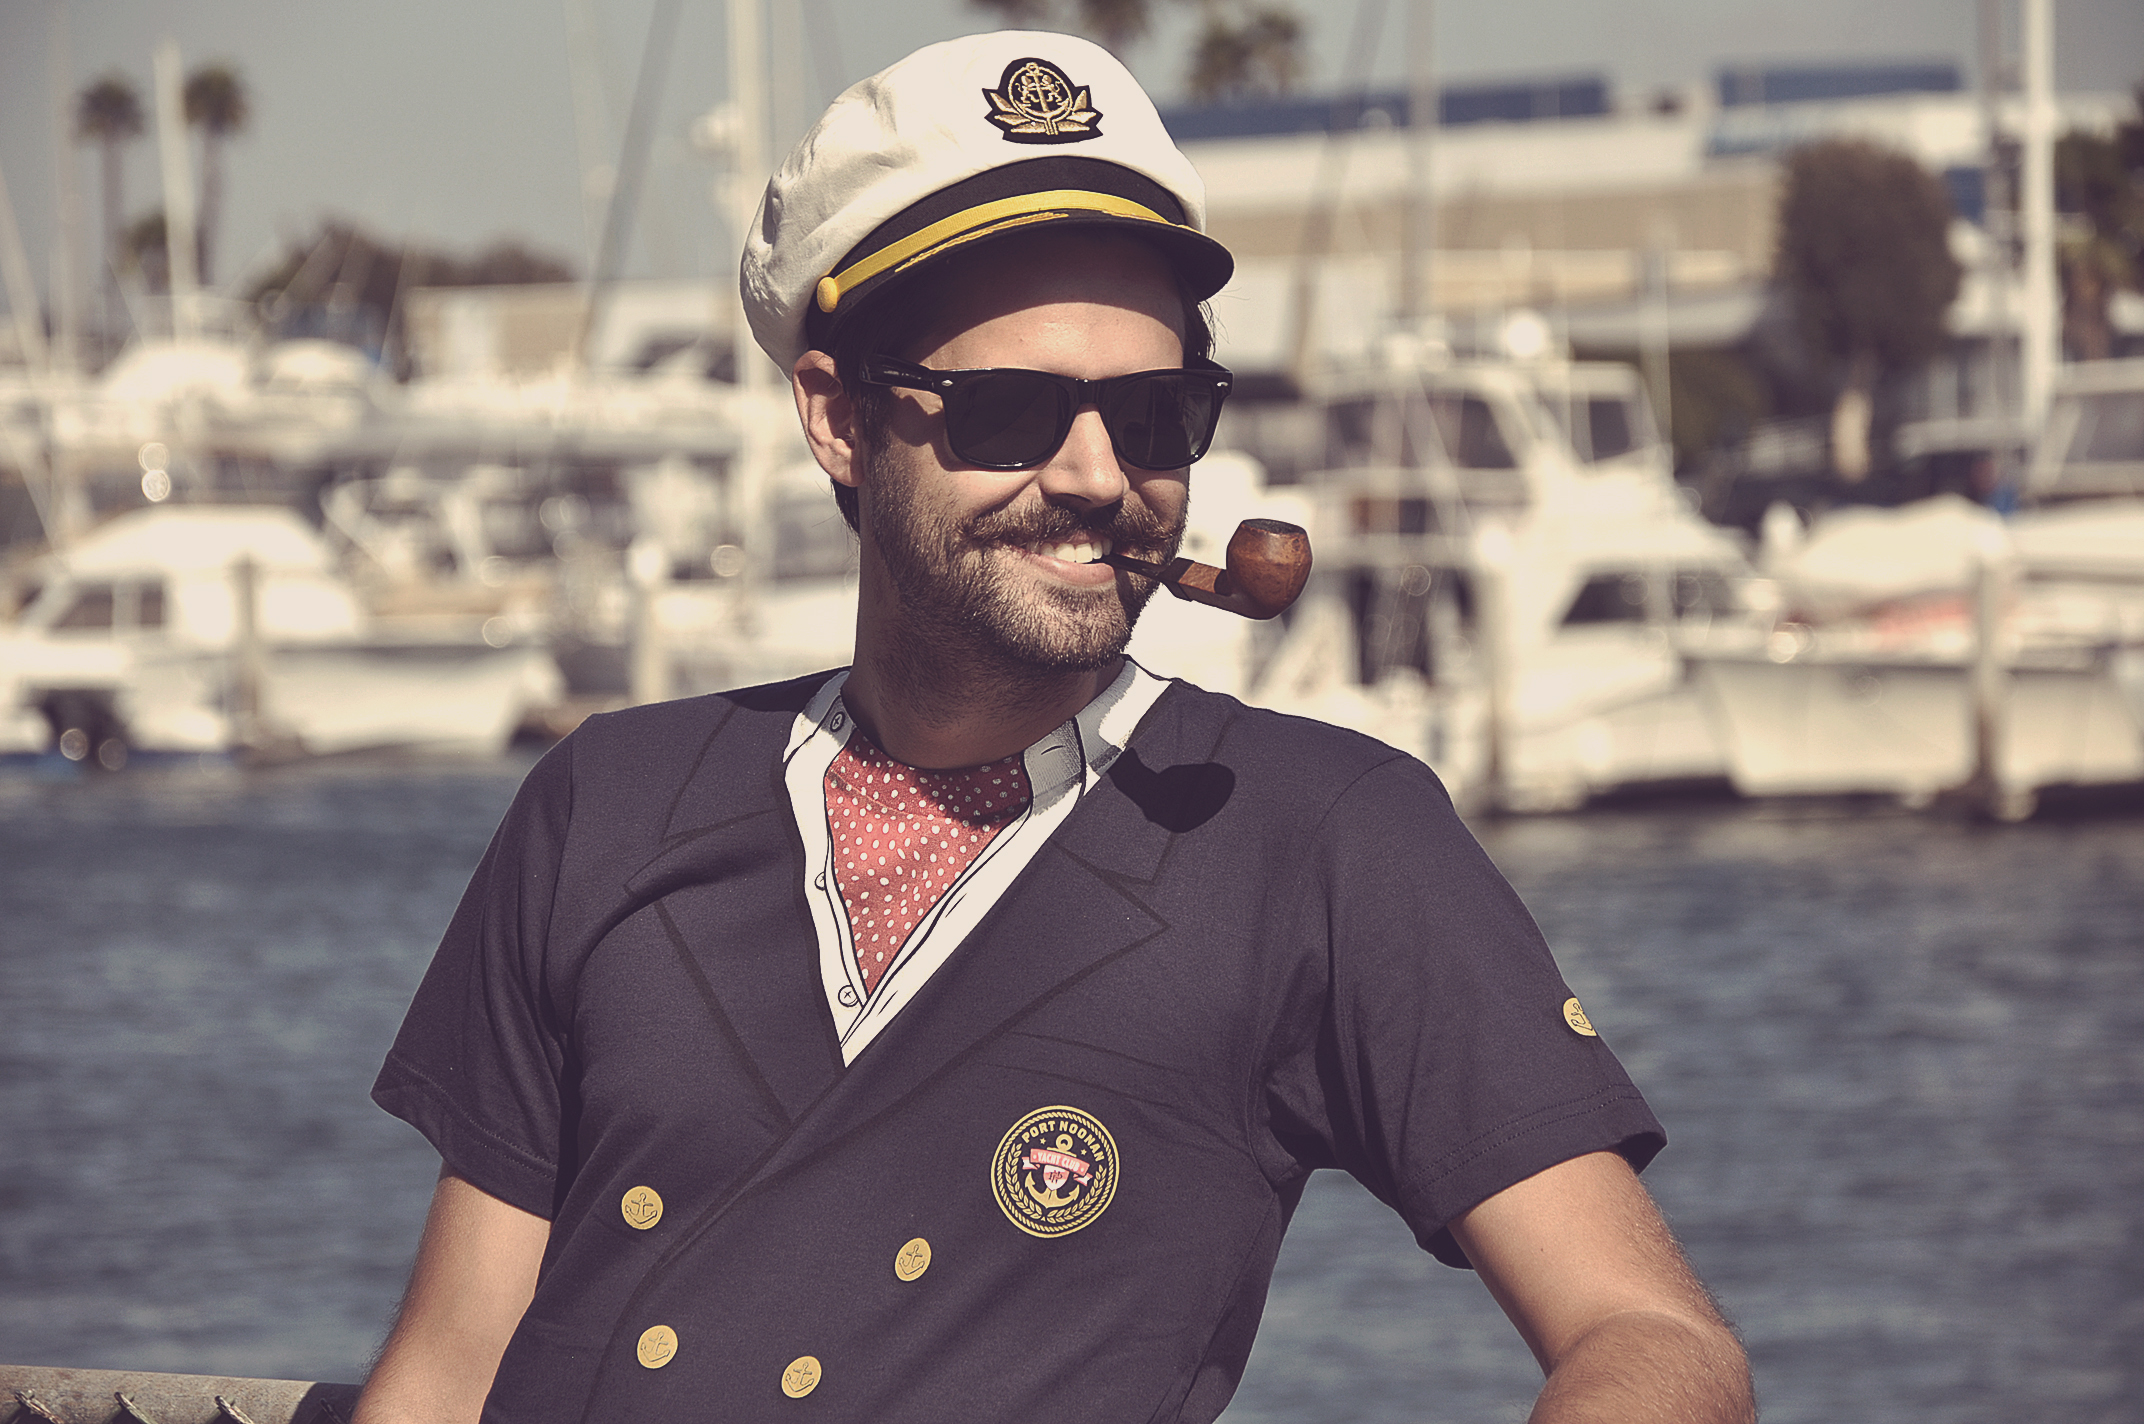 The Port Noonan Yacht Club Ascot T-Shirt